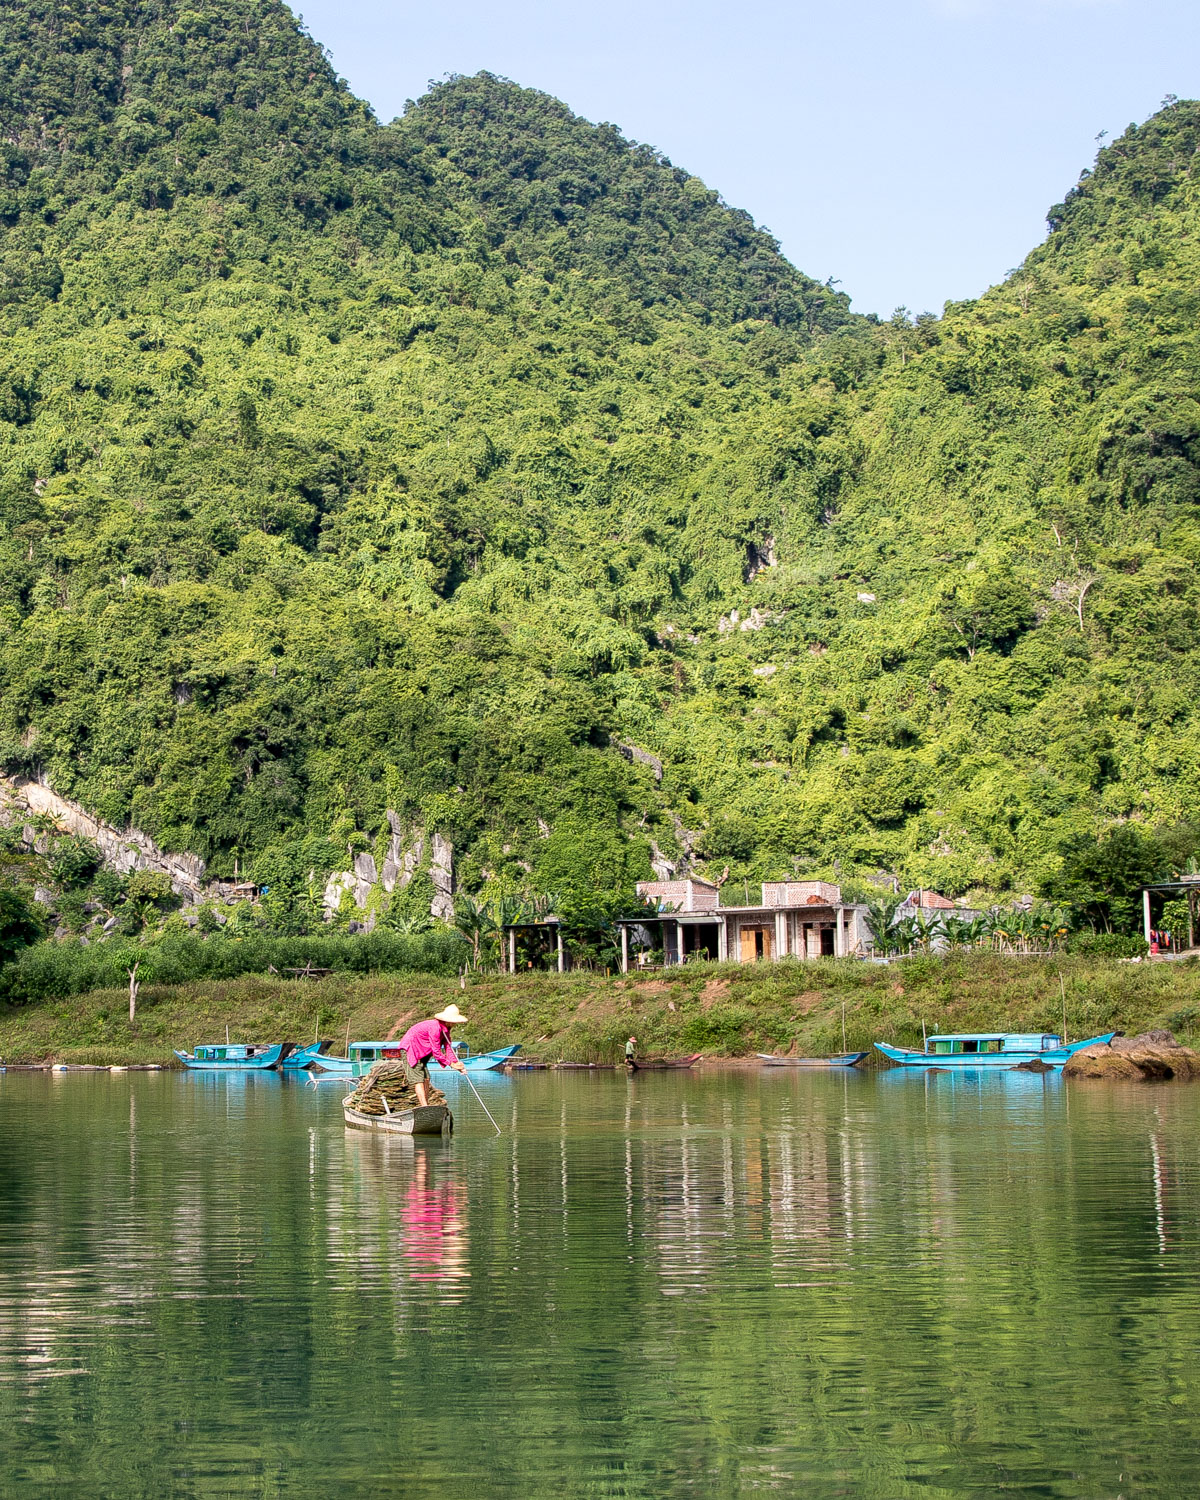 The views of Phong Nha from the river